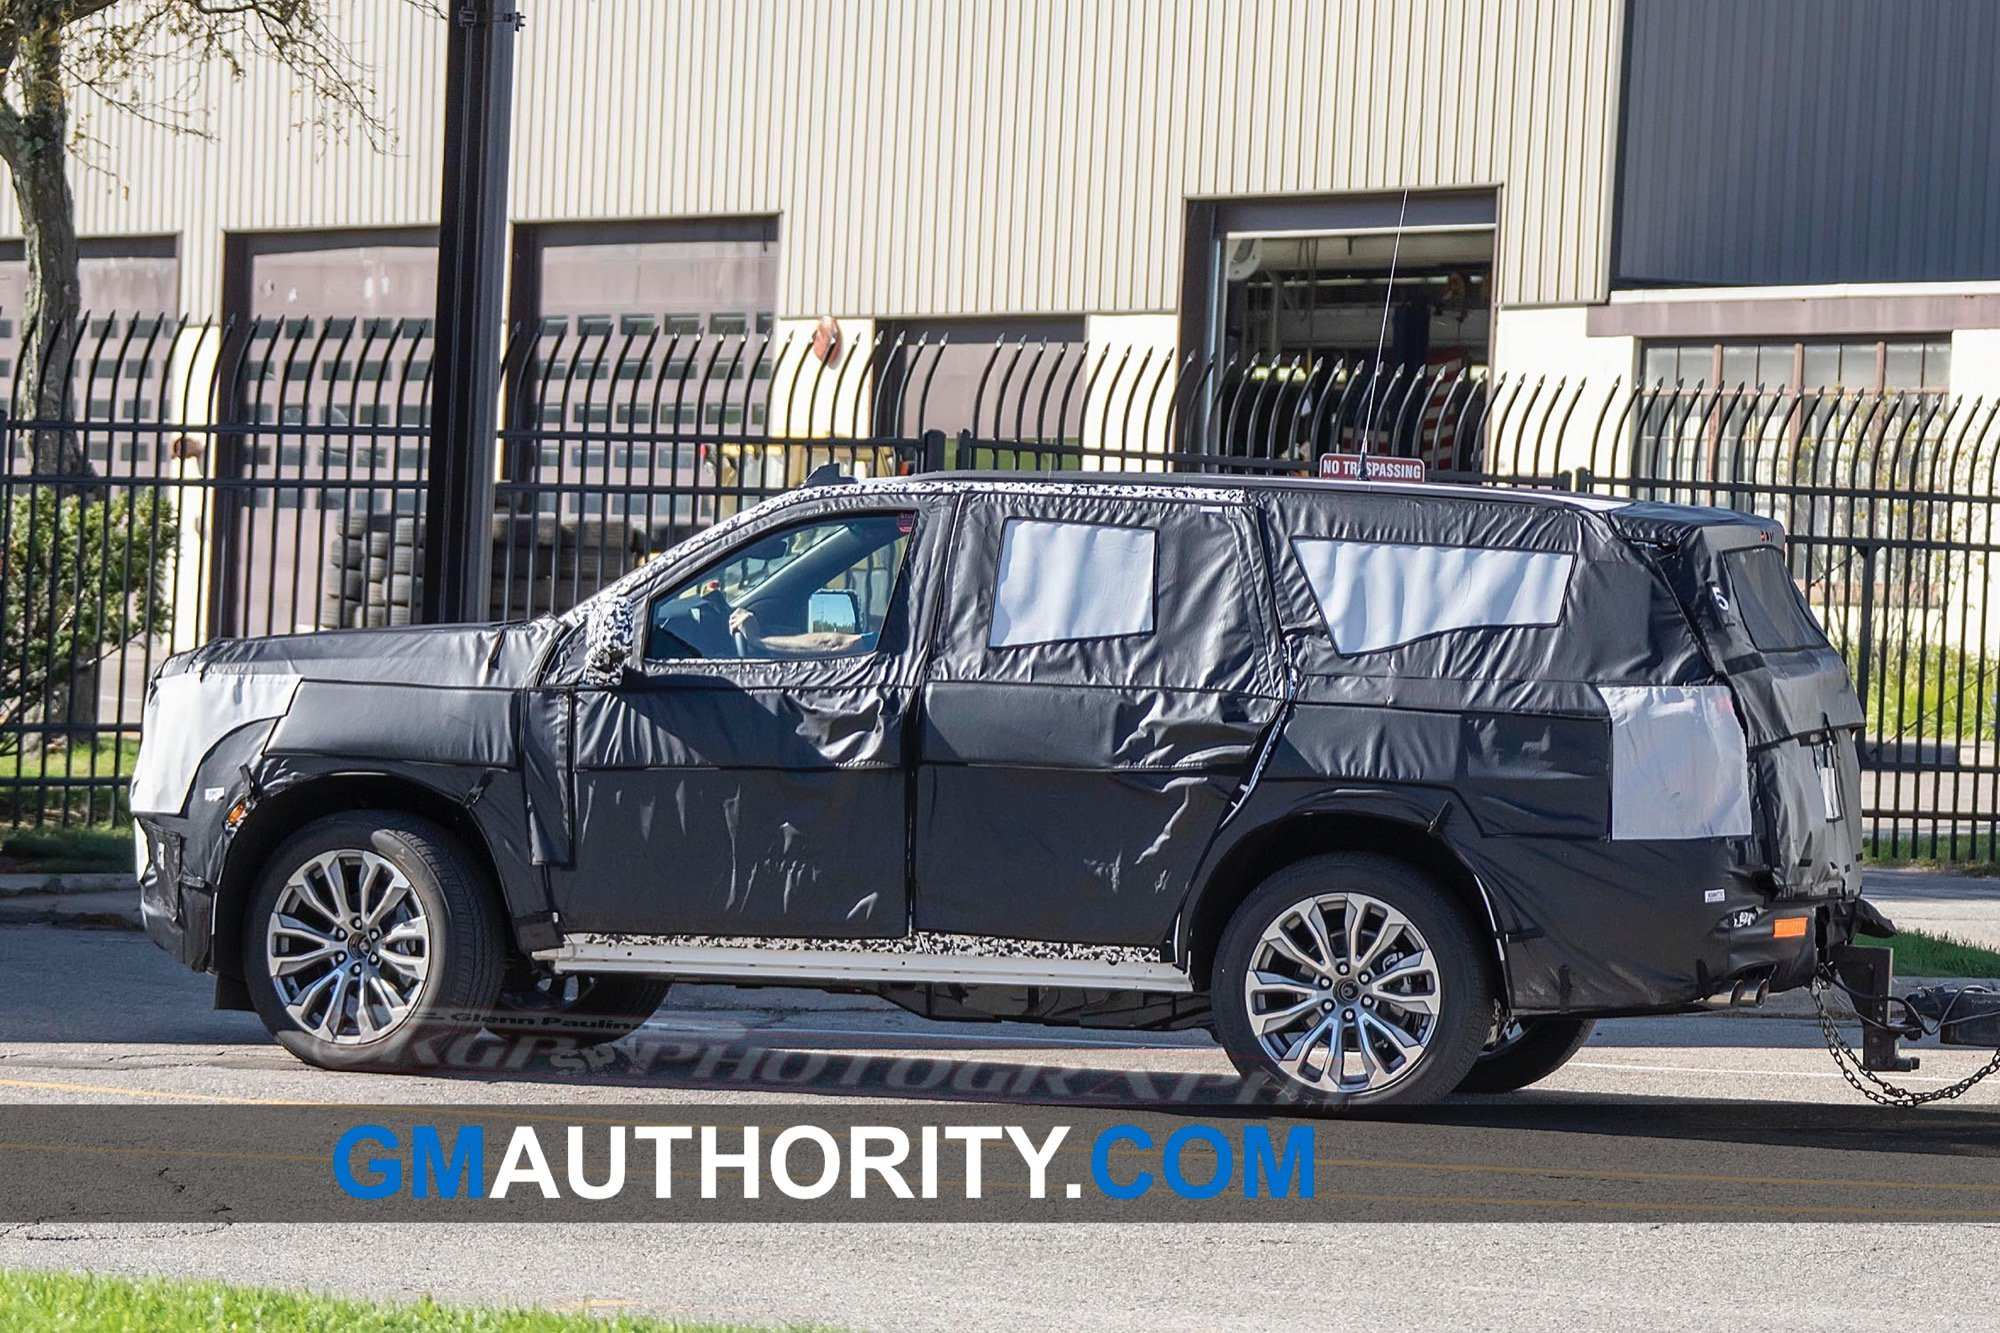 57 All New 2020 GMC Yukon Body Style Model